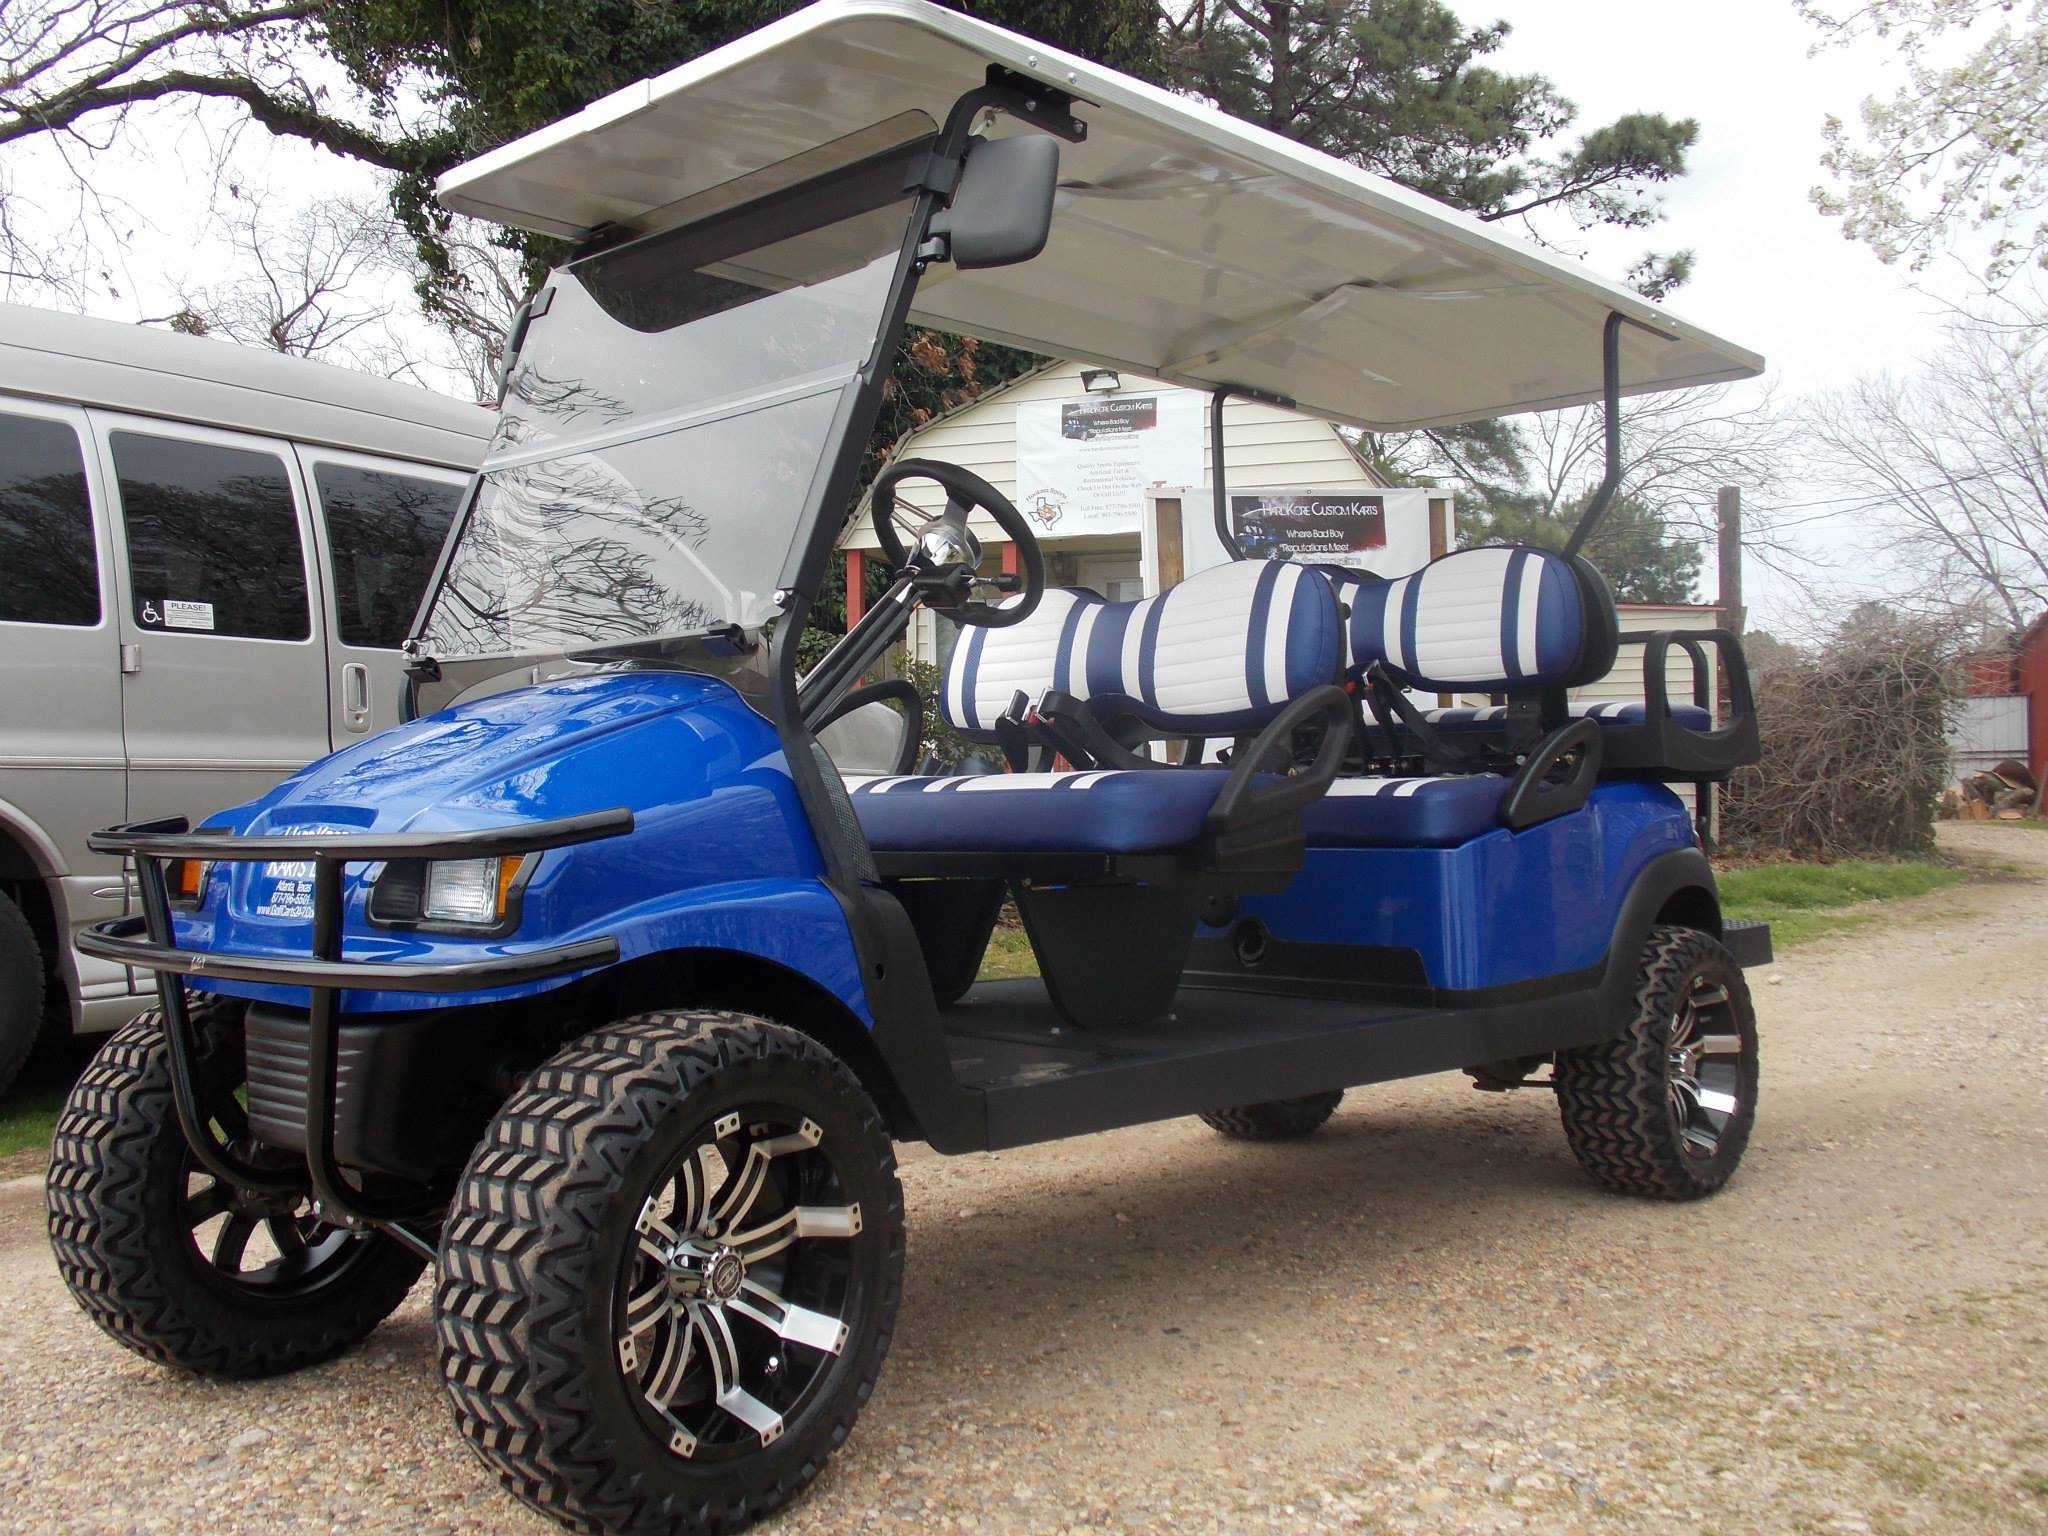 Blue Metallic Phantom Edition Limo on limo golf cart rims, limo golf cart kits, limo golf cart parts,